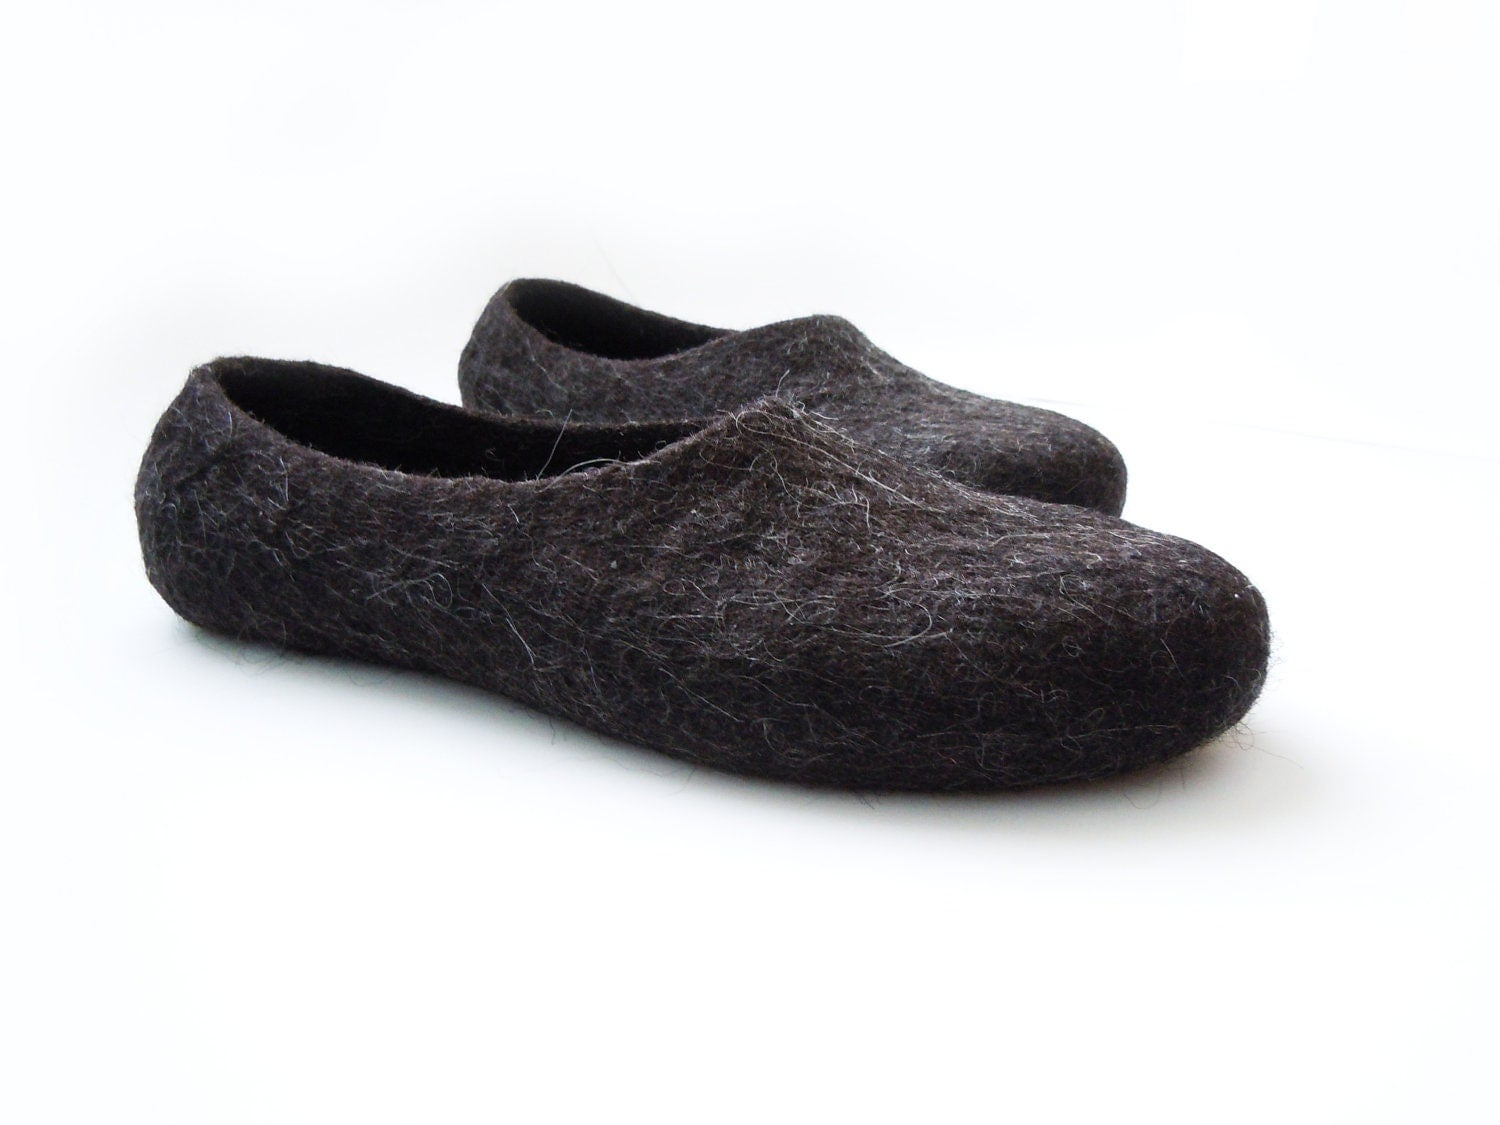 Eco friendly natural black color hand made felted men slippers - SimplicityOfFelt